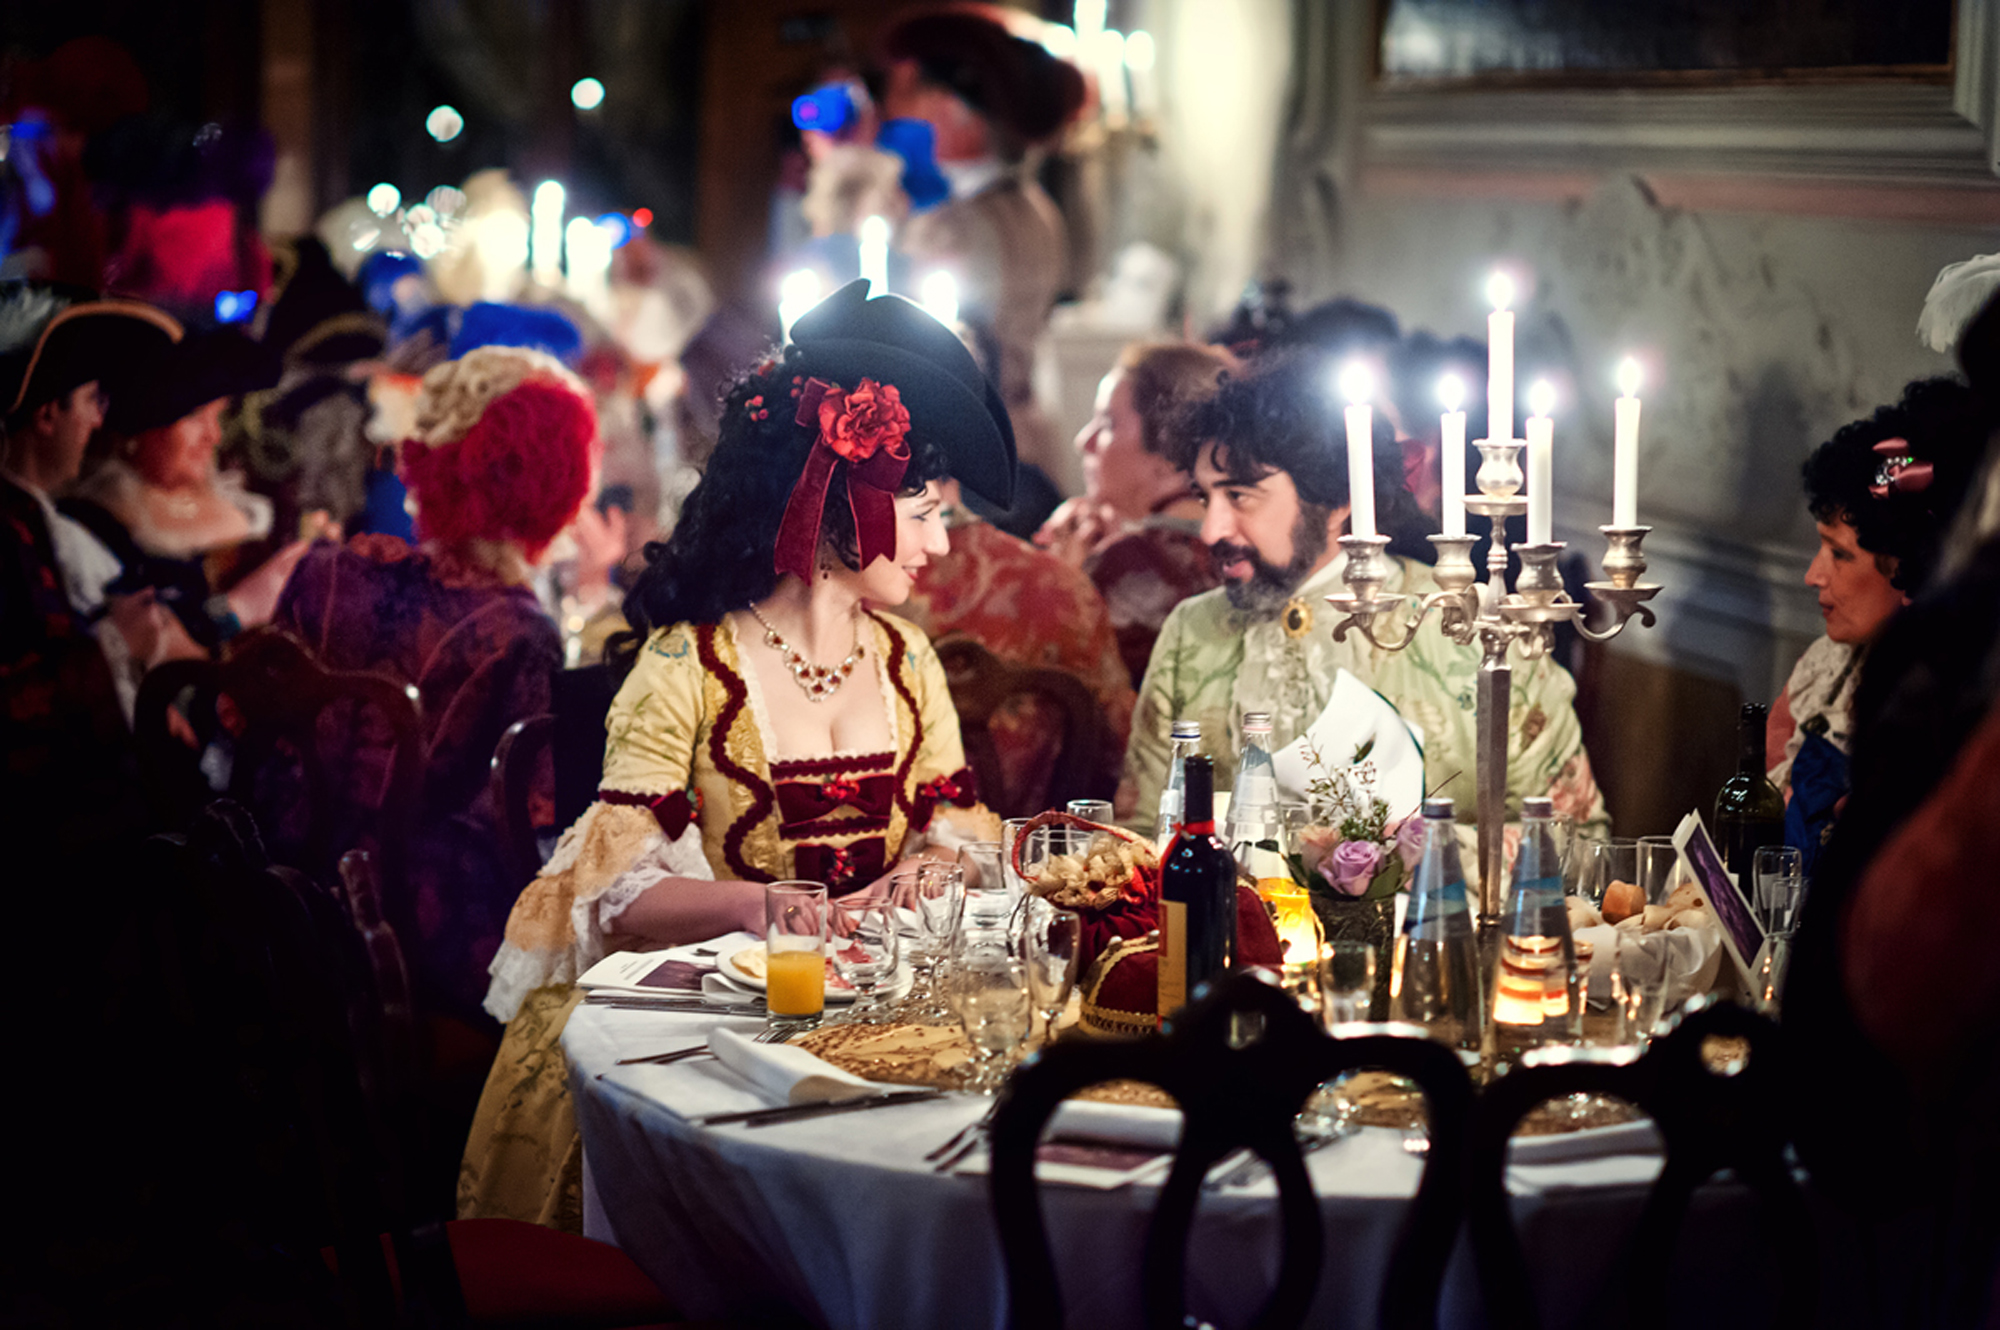 personal works laure jacquemin best venice carnaval photography (42).jpg